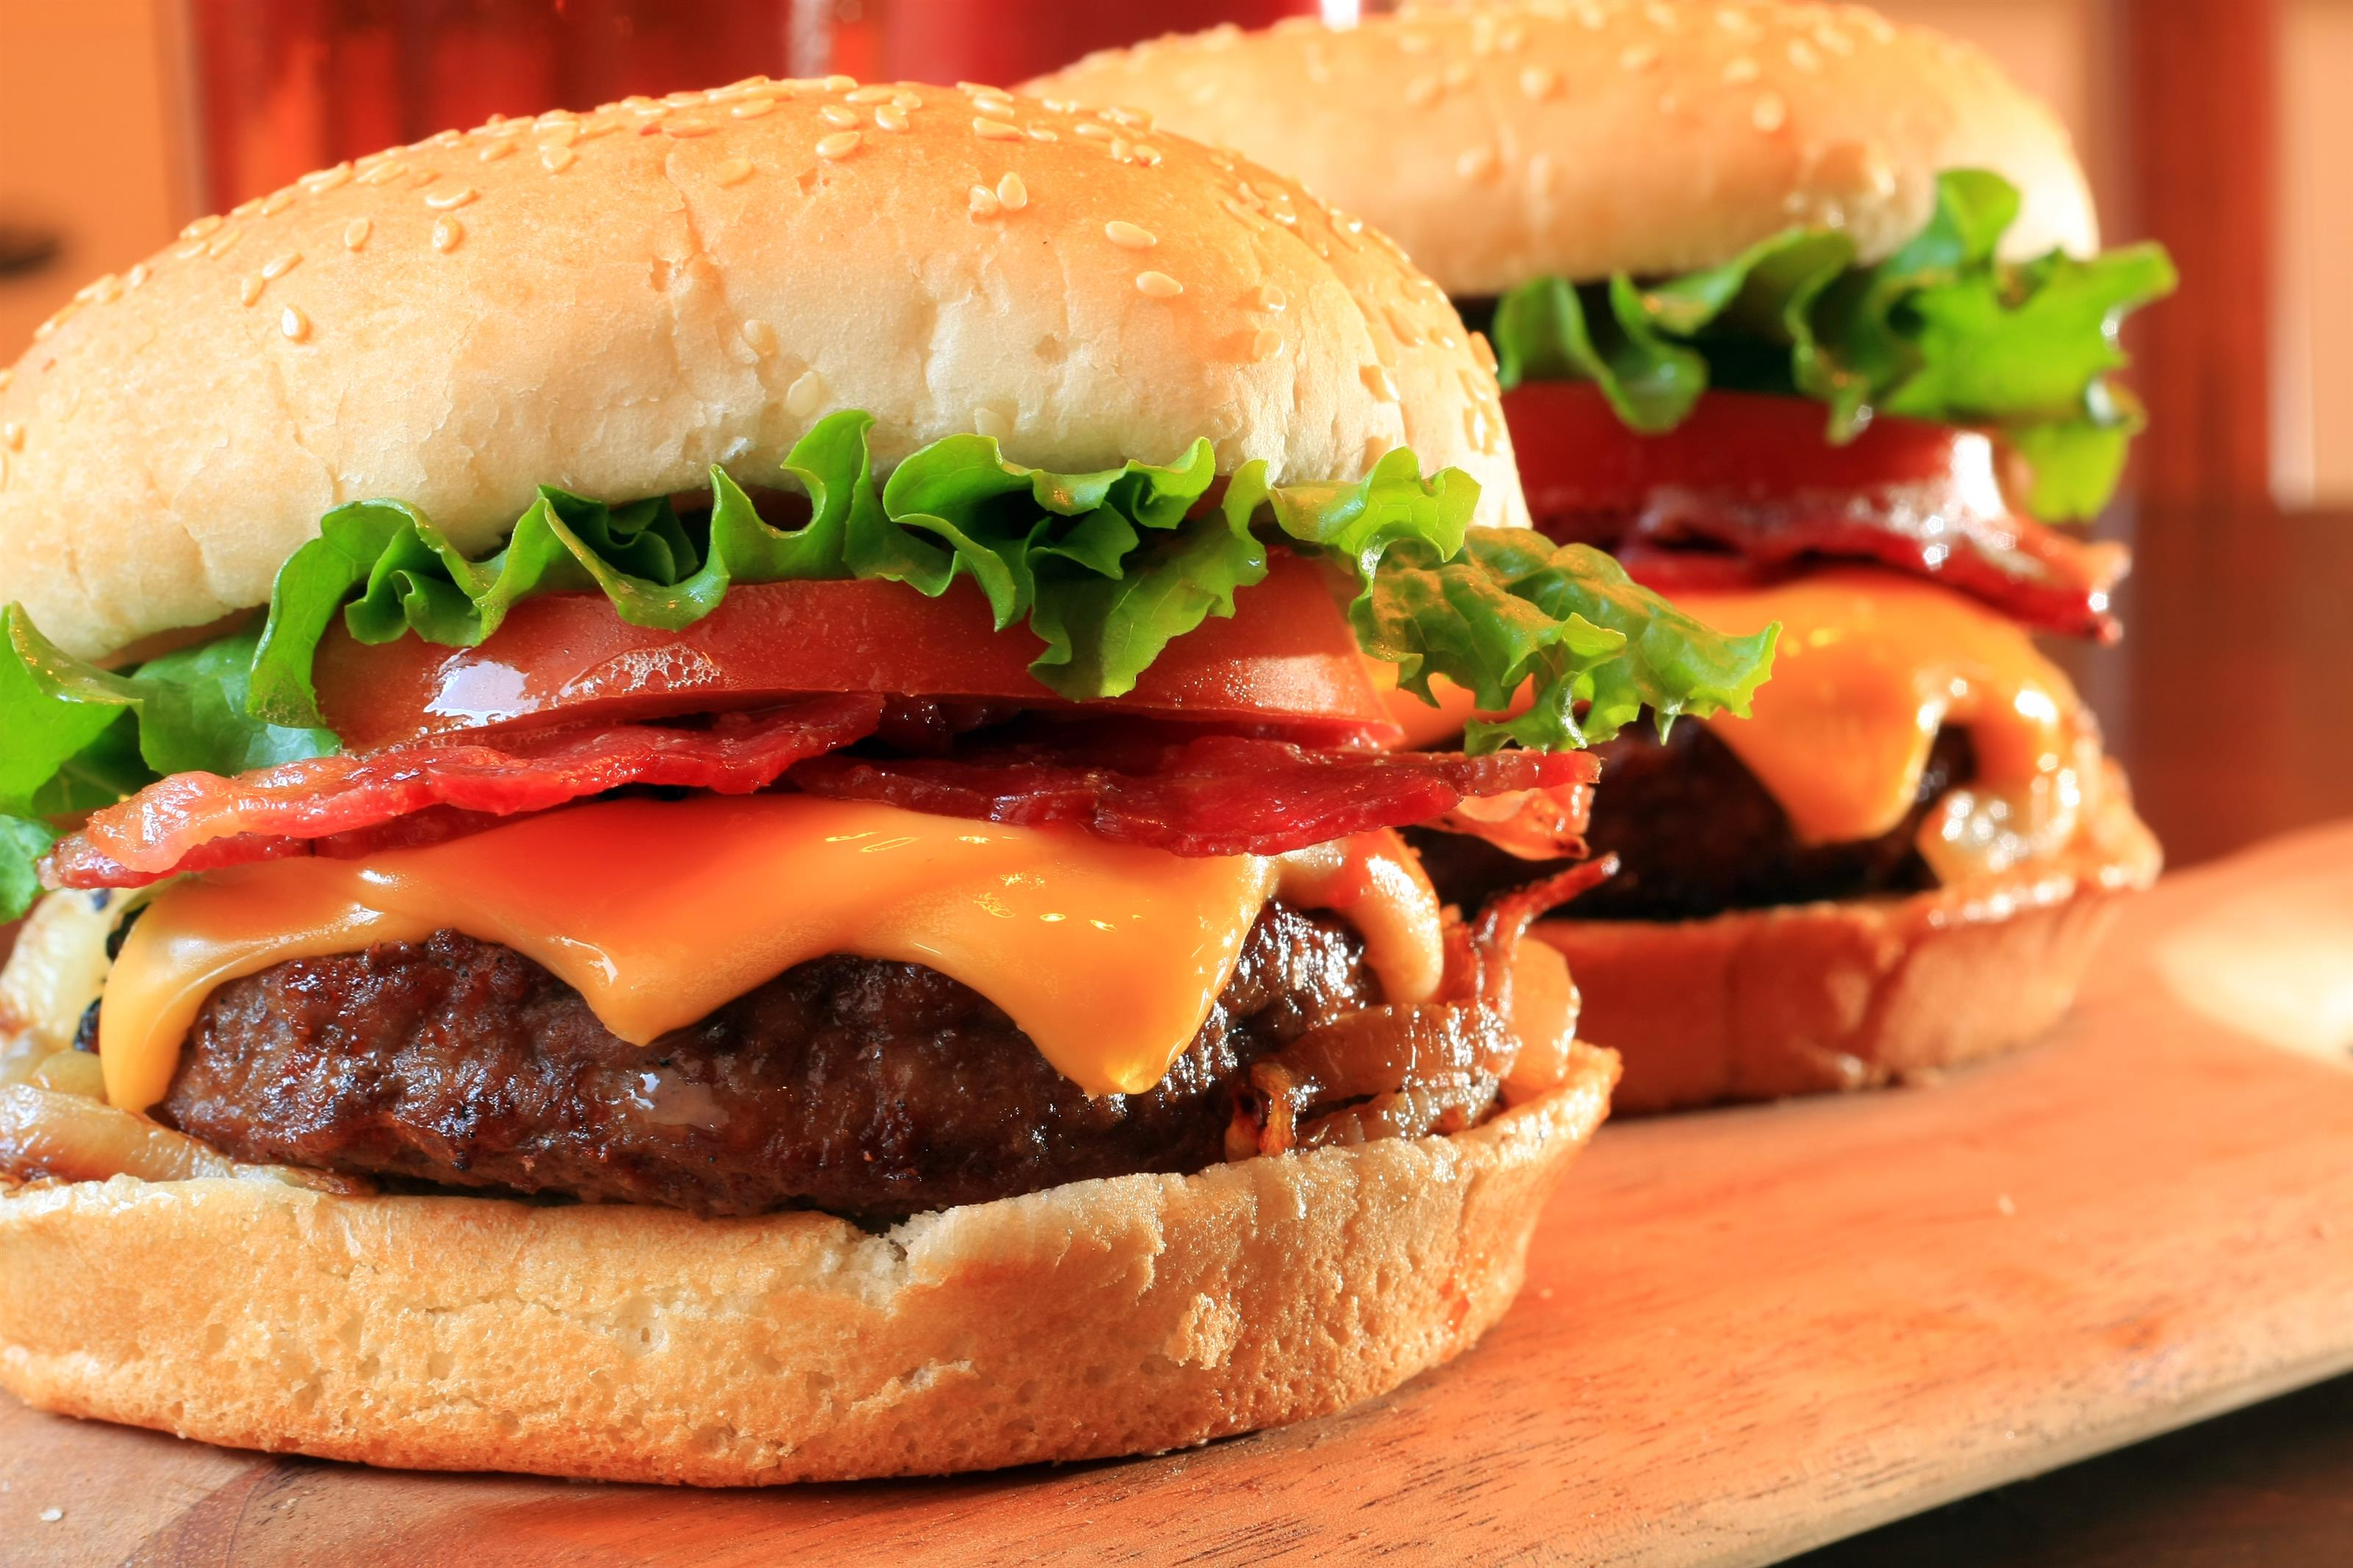 Two bacon cheeseburgers with tomato and lettuce on bun.